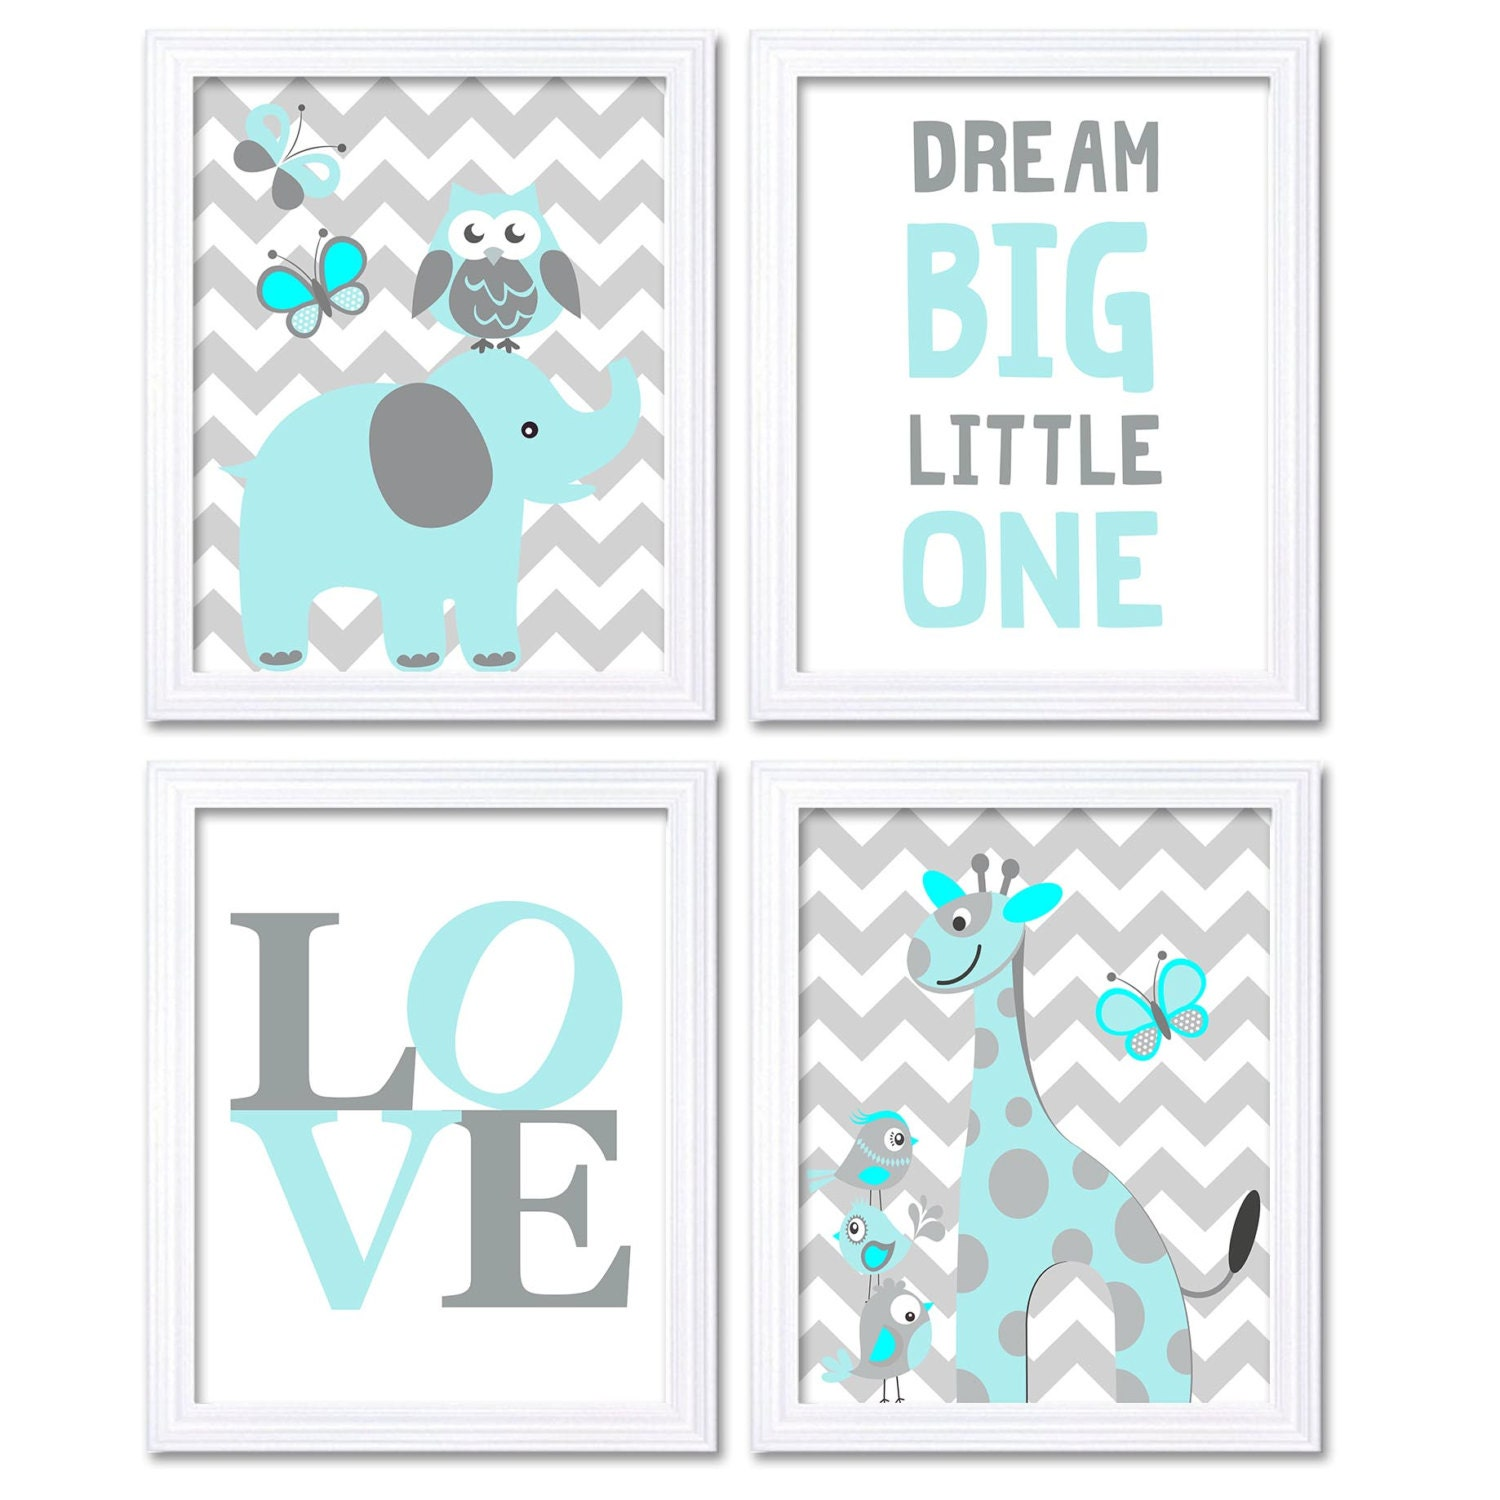 Blue Turquoise Aqua Elephant Giraffe Owl Nursery Art Dream Big Little One LOVE Set of 4 Prints Chevr